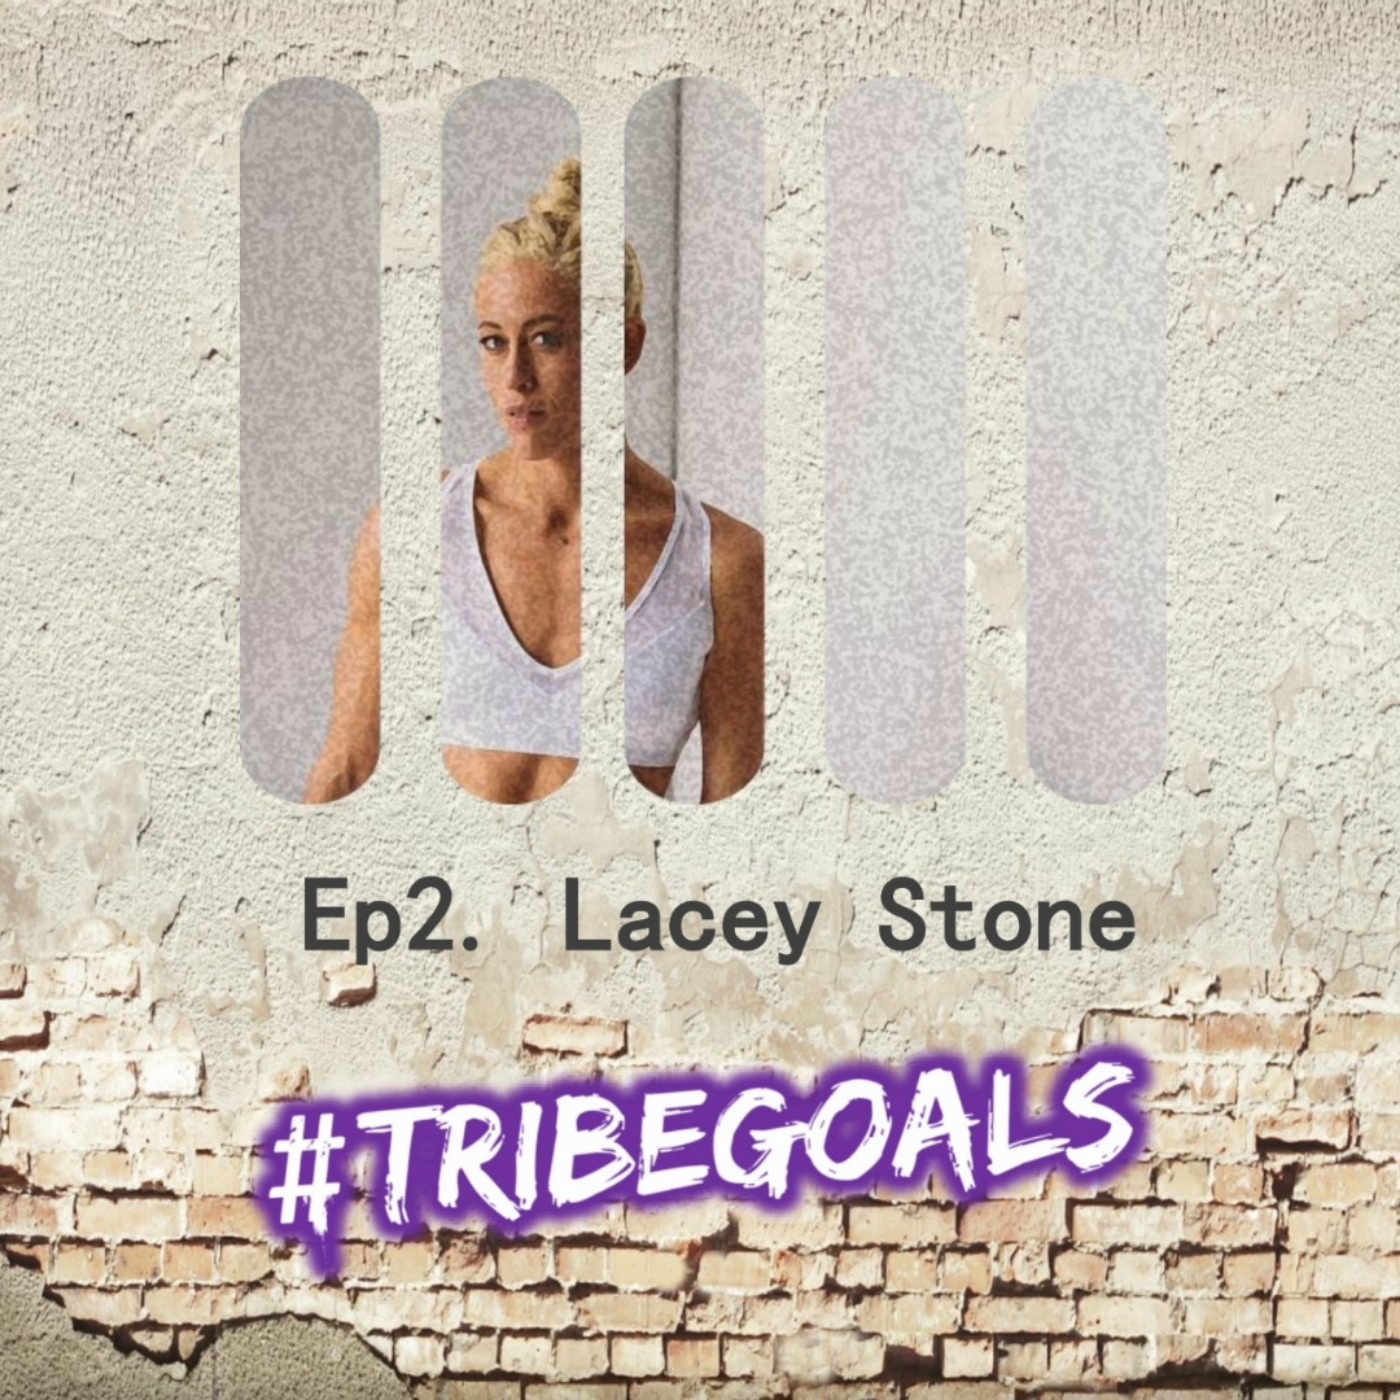 S1. Ep 2. | #TRIBEGOALS with Lacey Stone